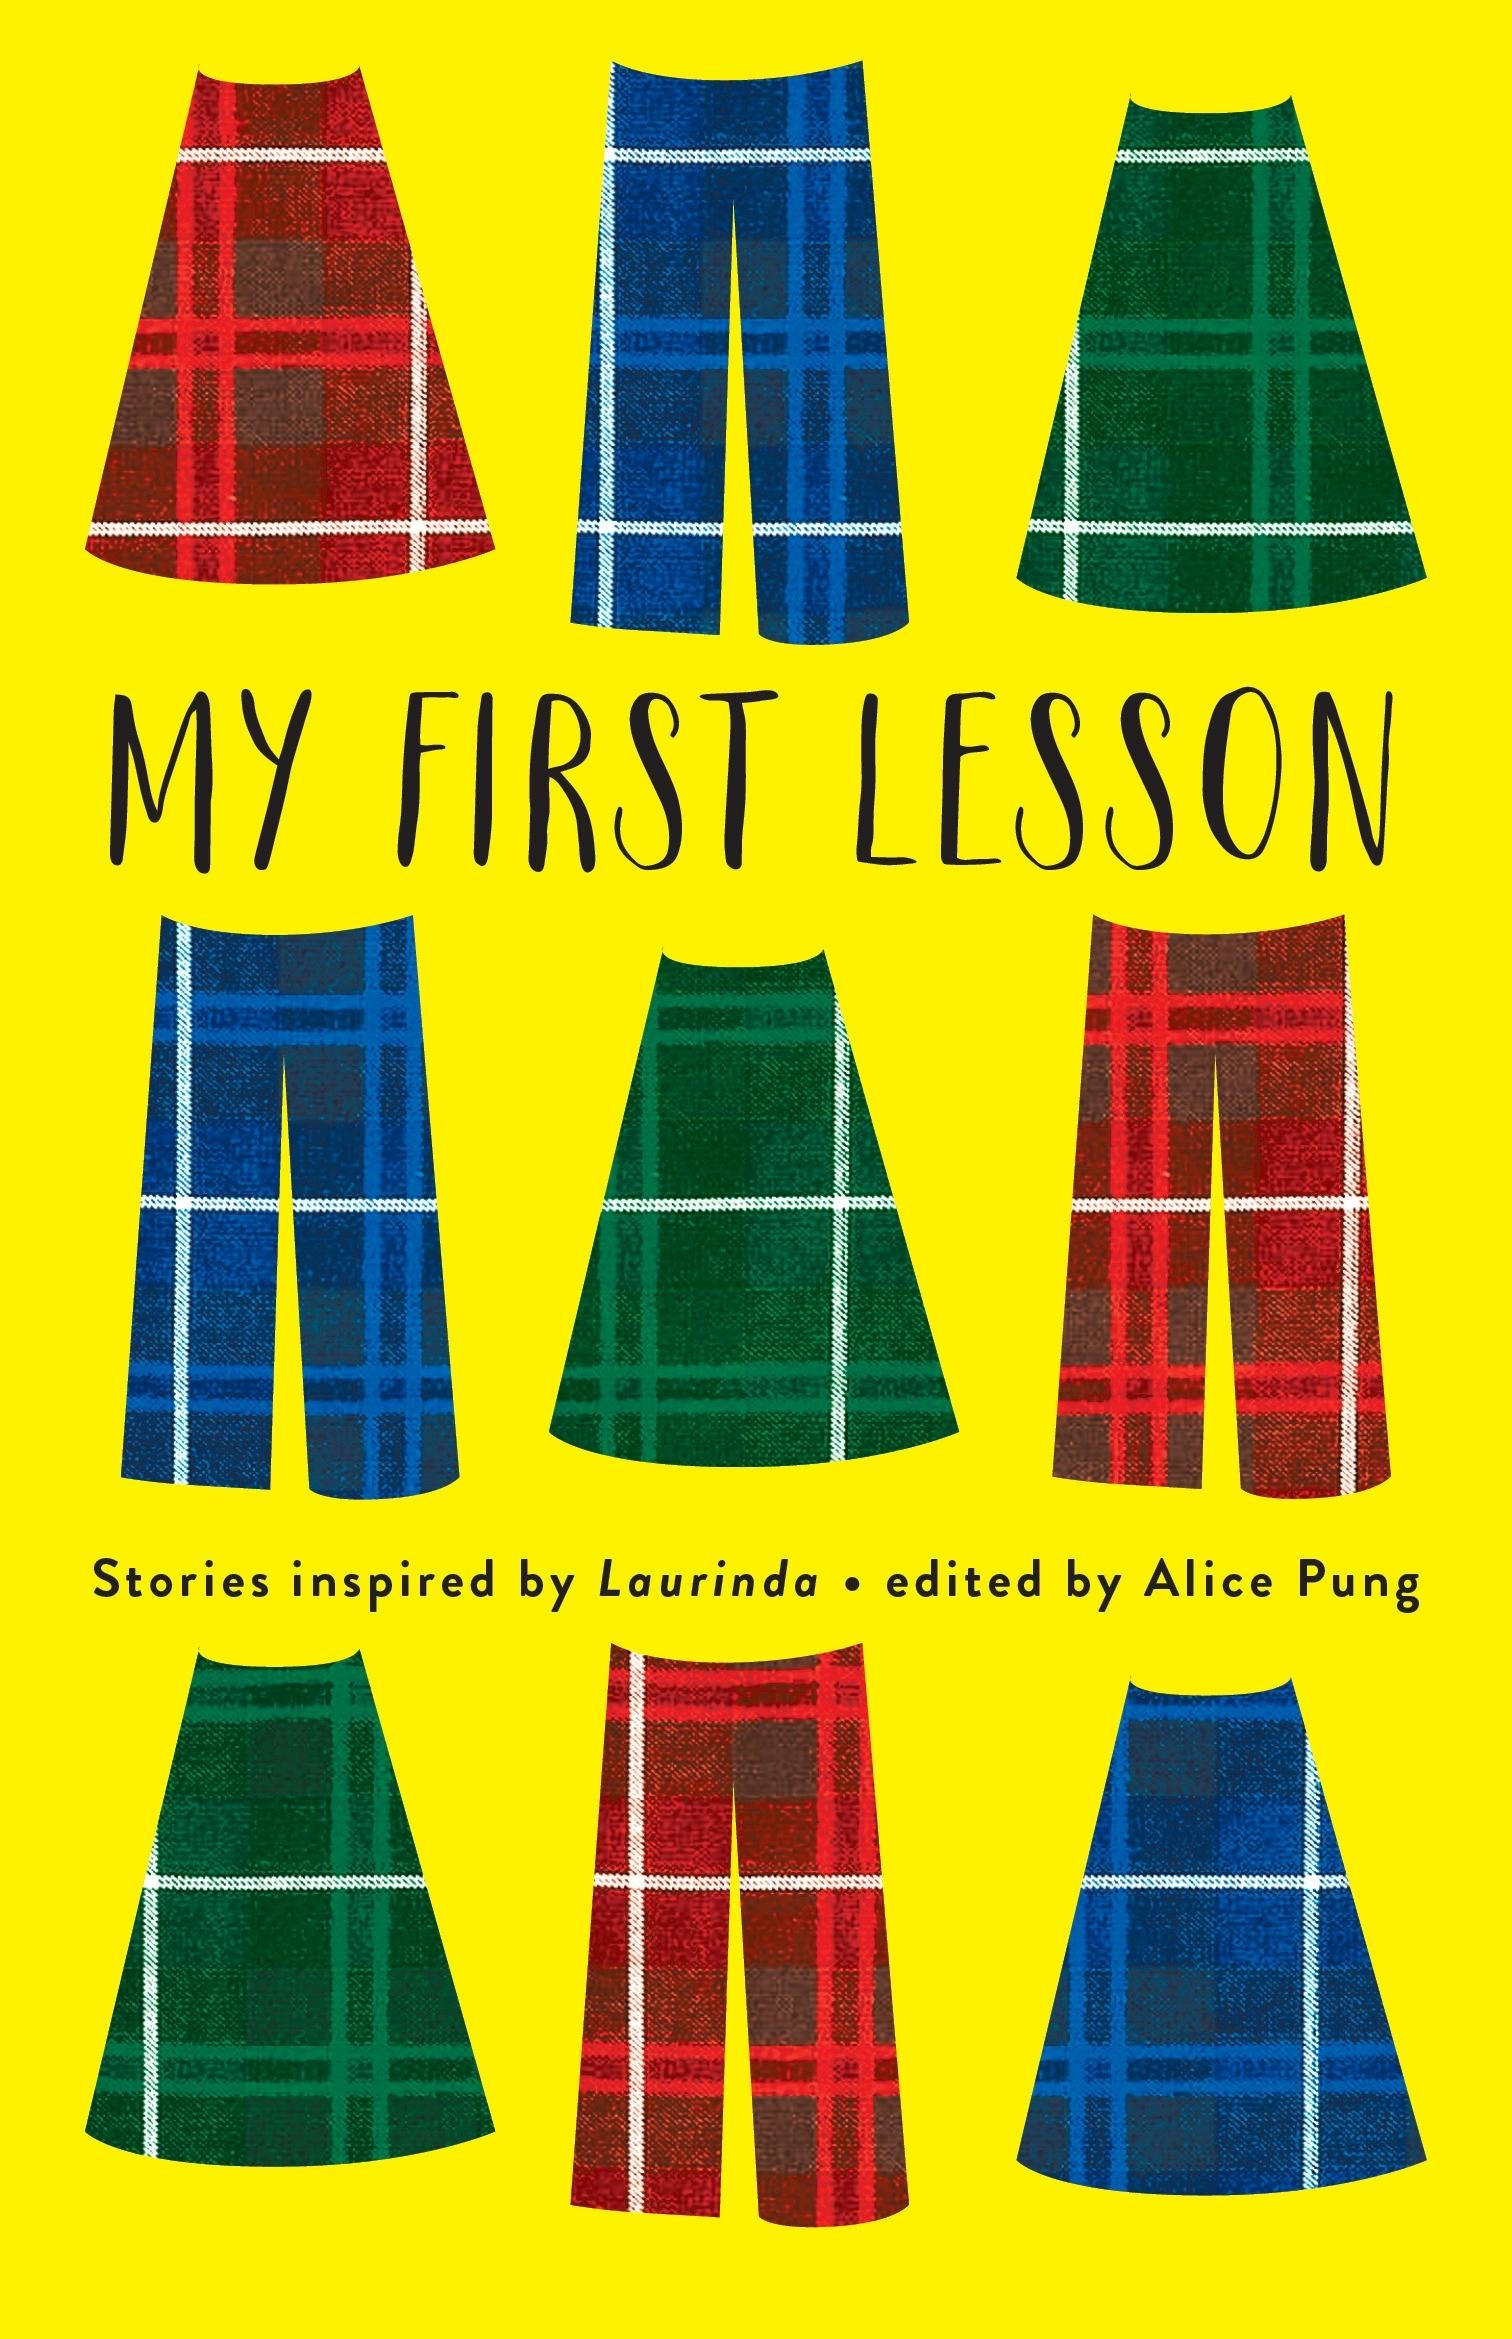 My First Lesson: Stories Inspired by Laurinda